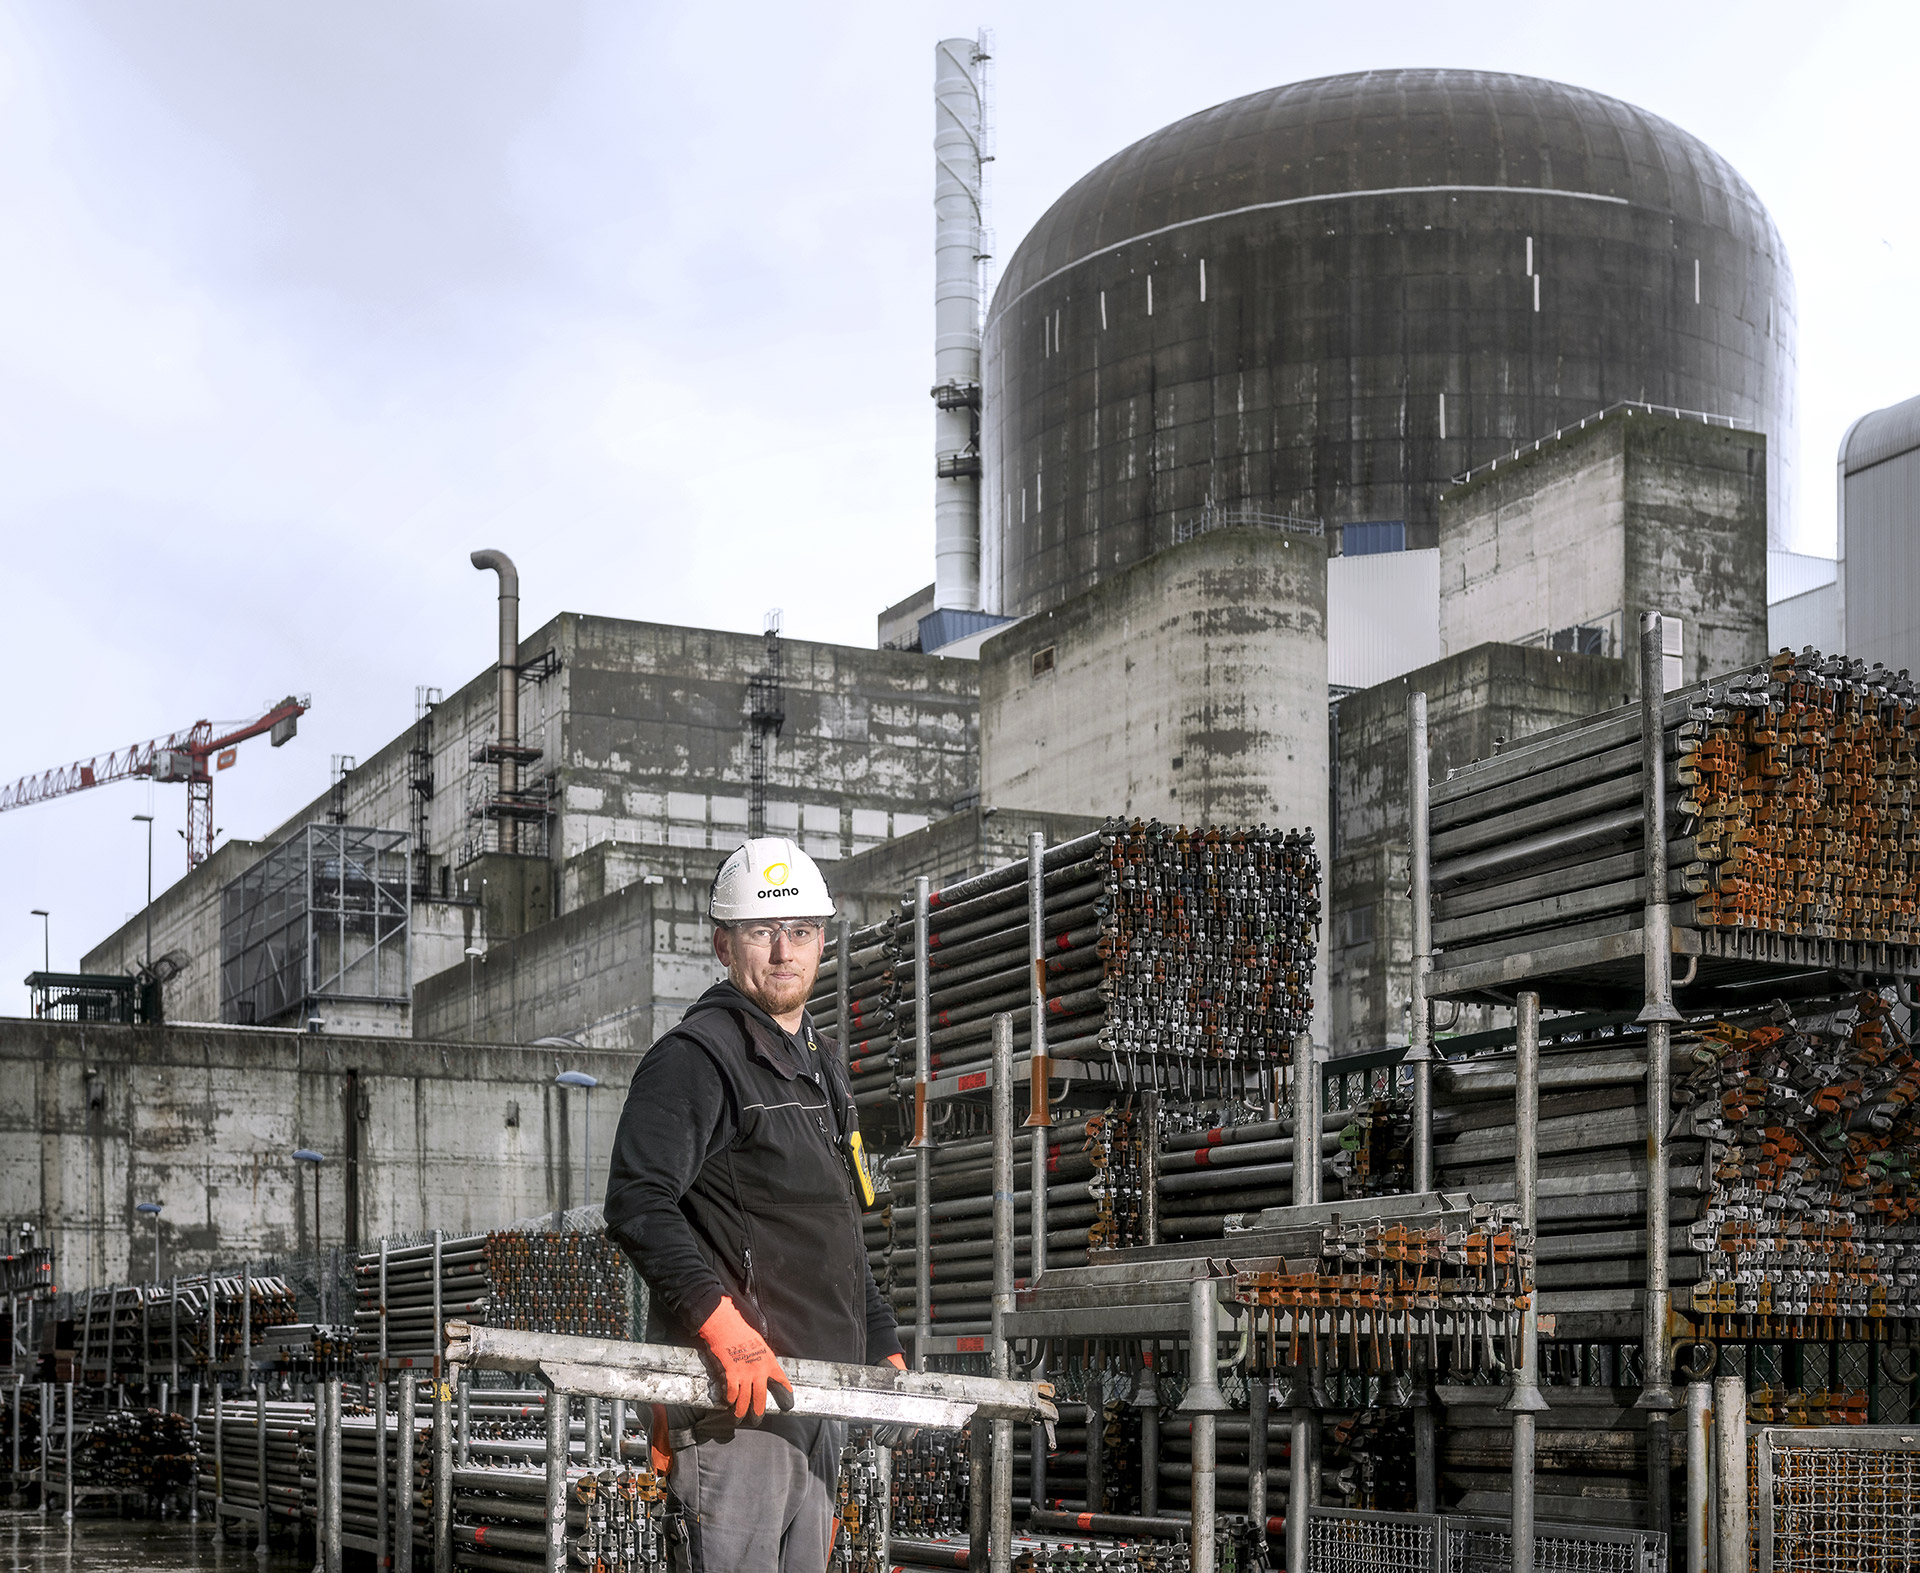 Activities of services for EDF support for the operation of the nuclear power plant of Paluel.